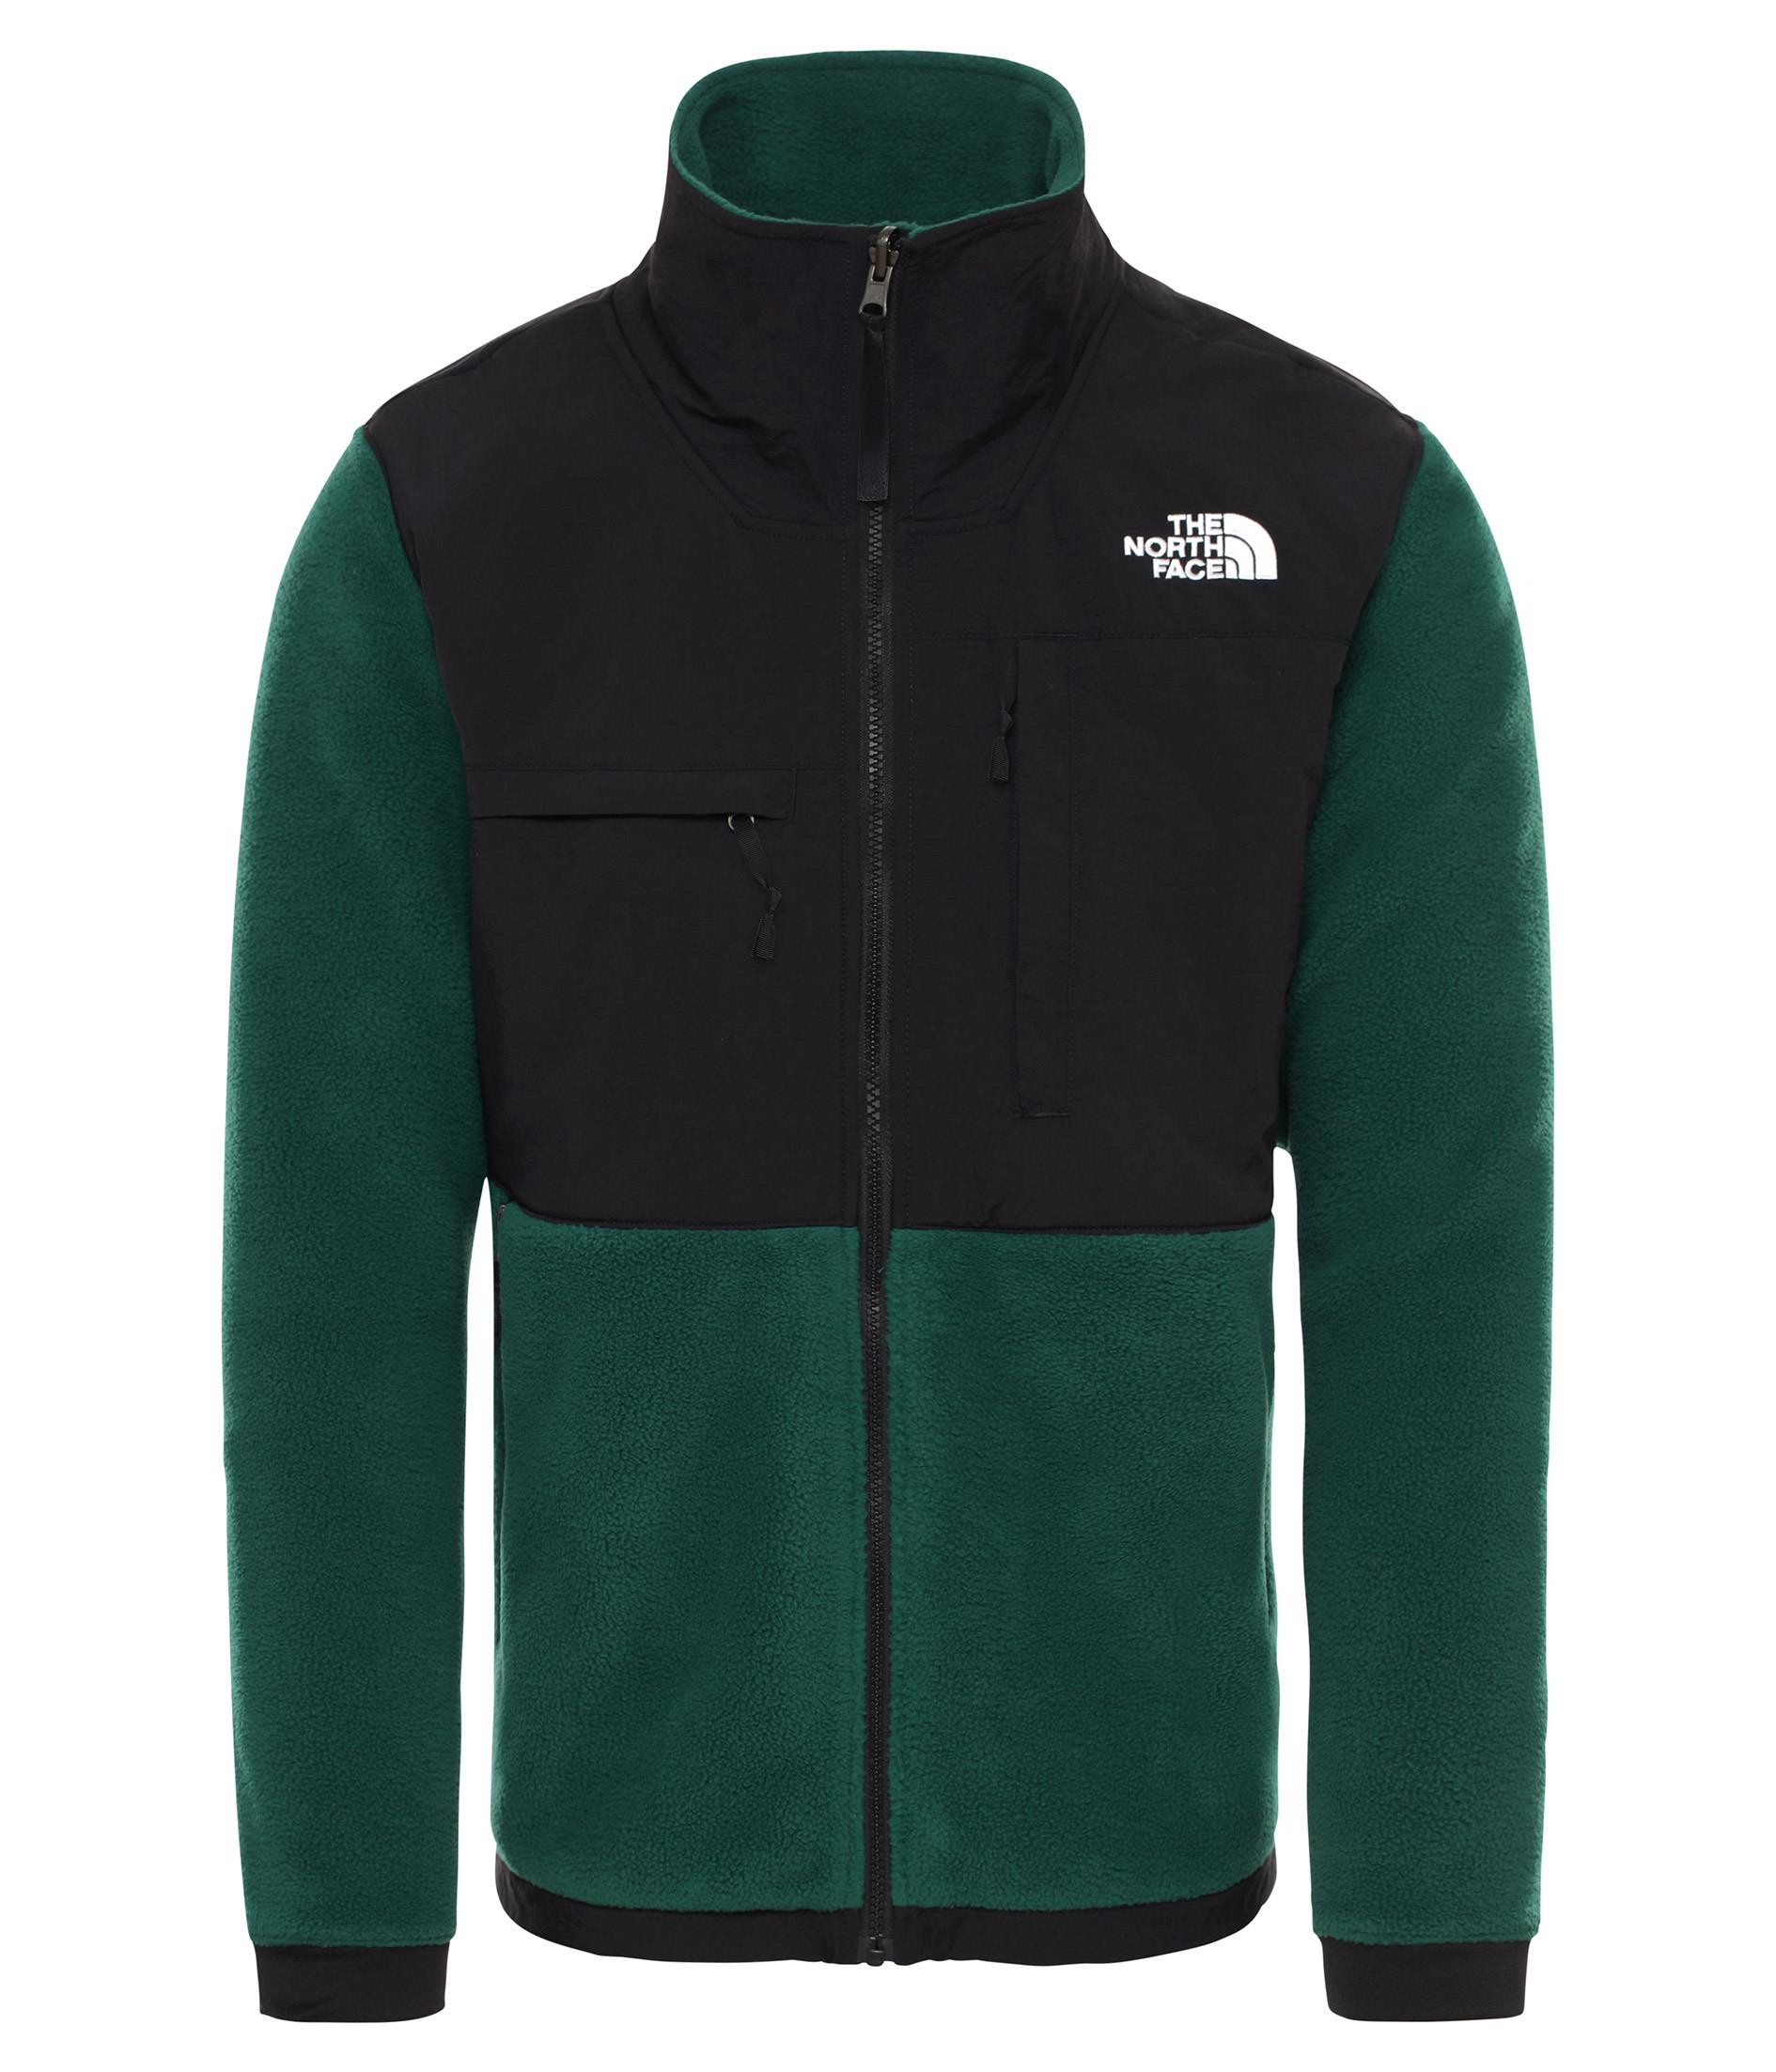 The North Face Denali Polar Ceket2 - Eu Nf0A3Xaun3P1